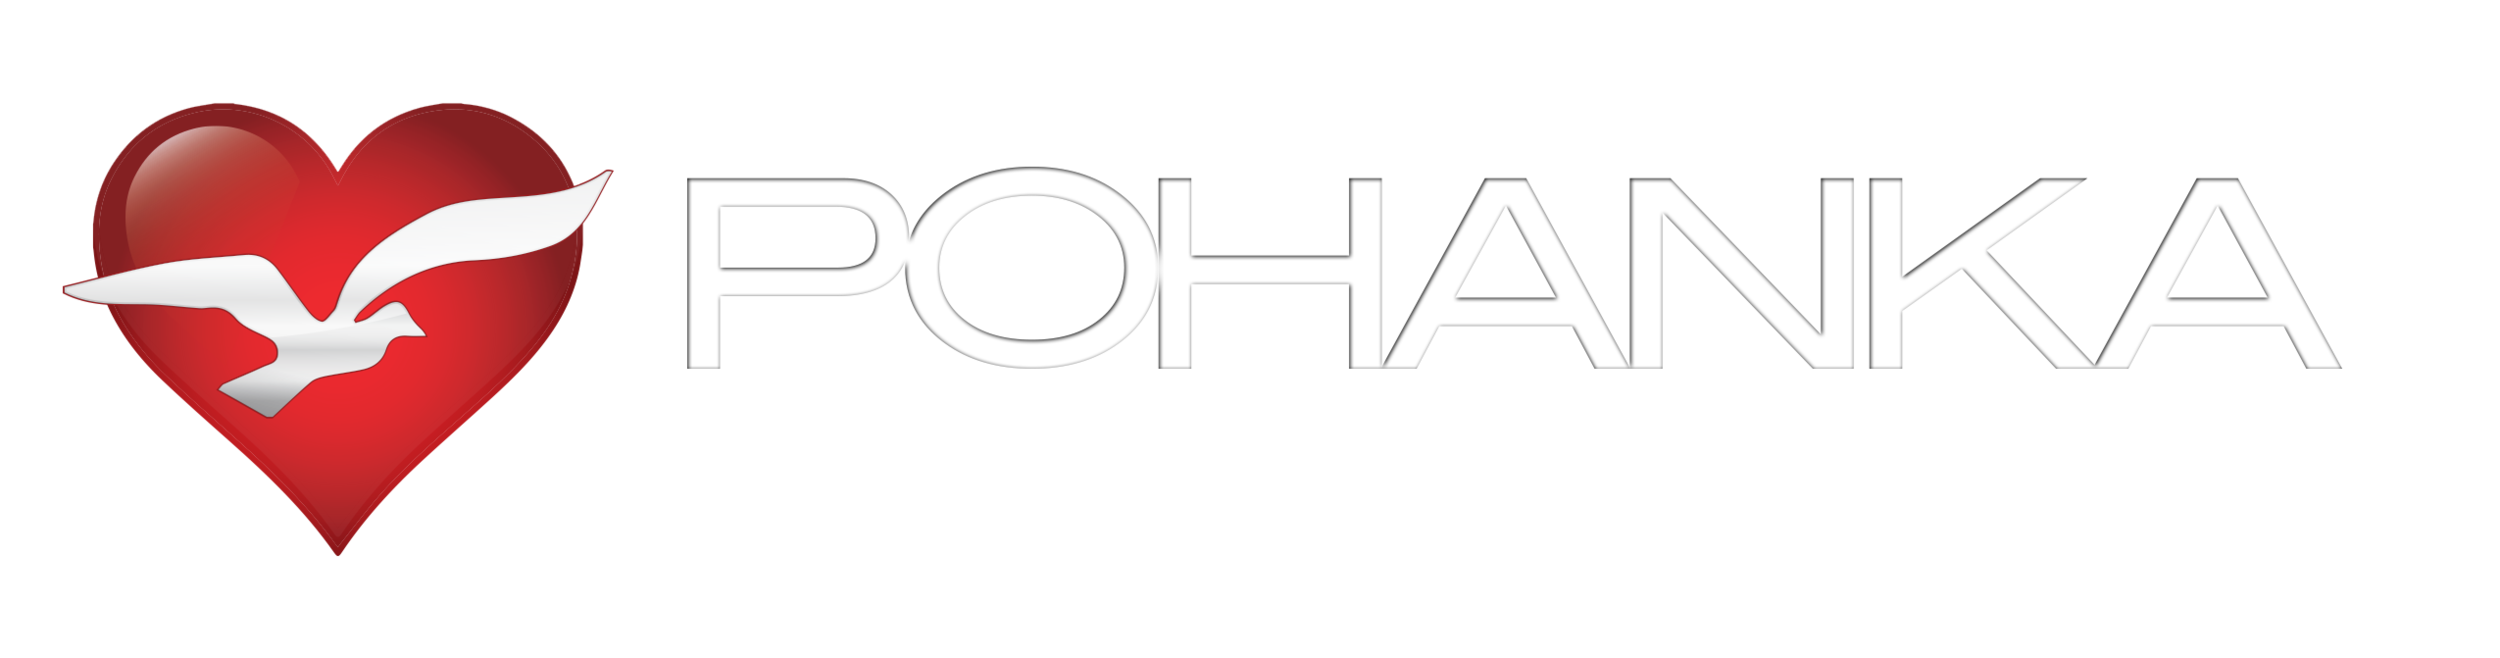 Pohanka-Pays-it-Forward.png